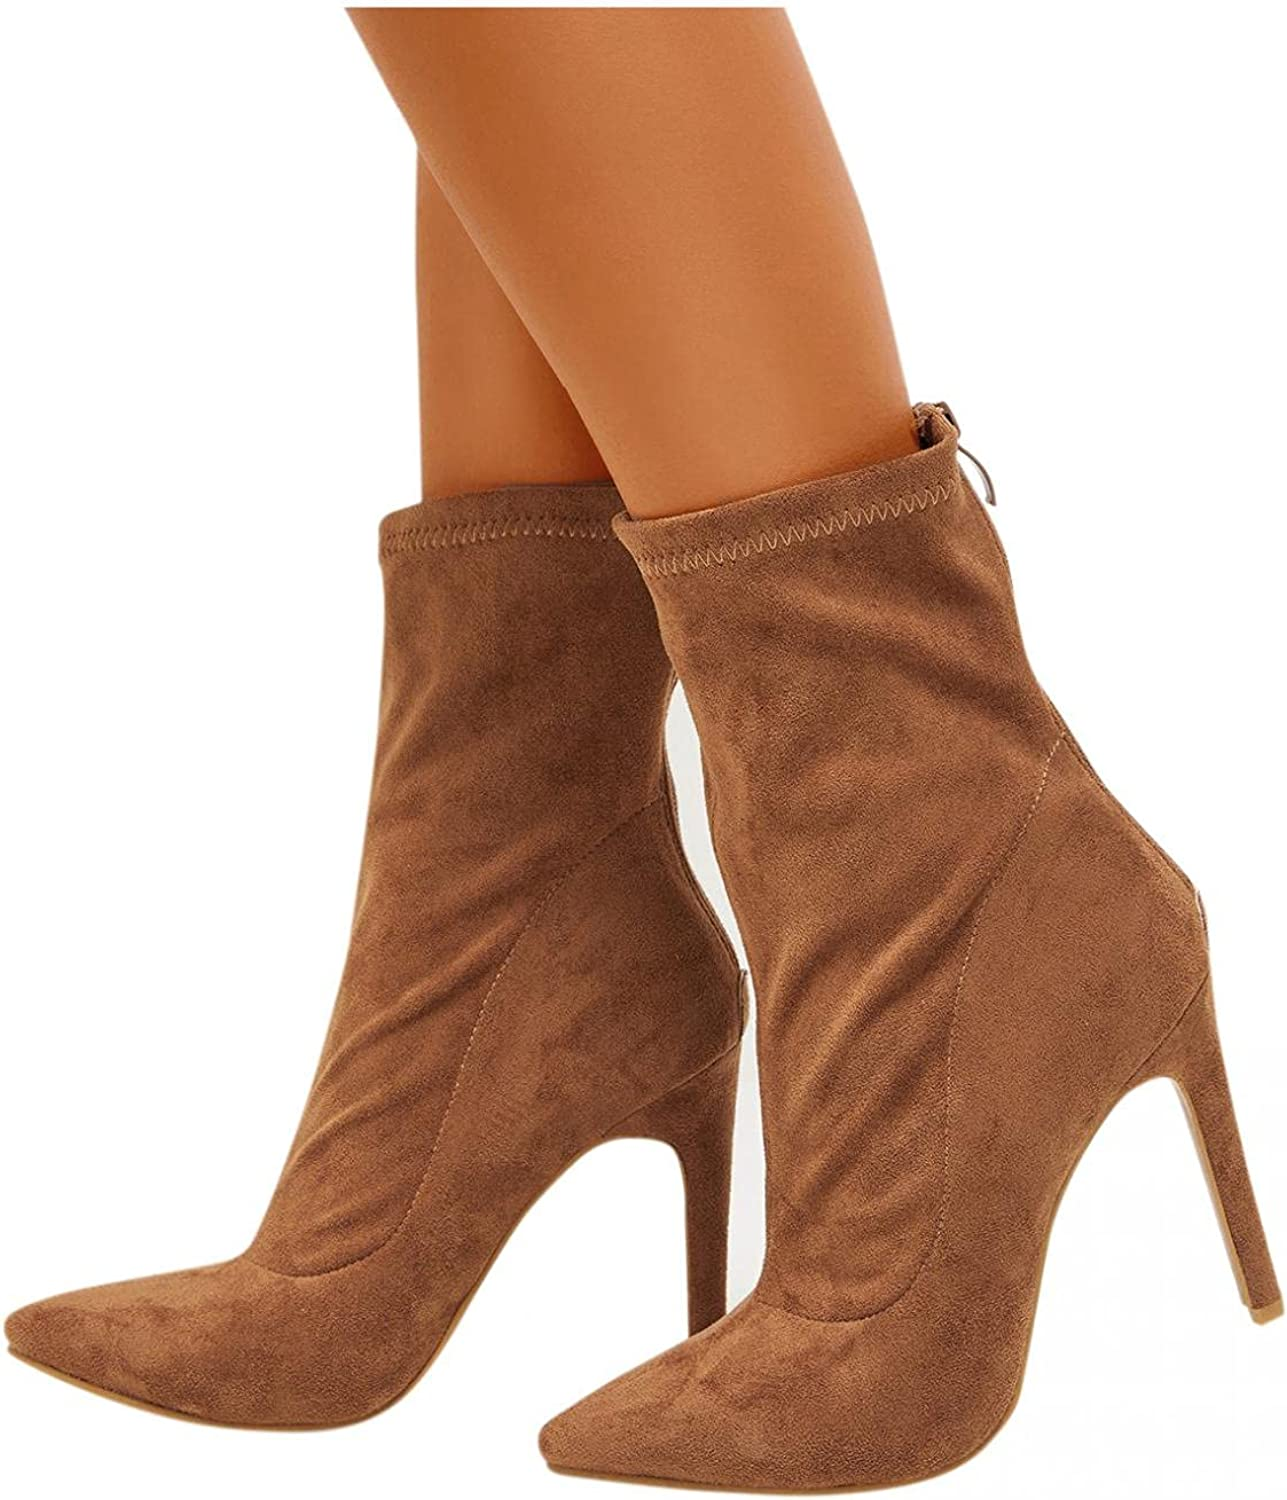 UOCUFY Ankle lowest price Boots for Women Platform Large special price !! Sexy Zipper Autumn Fashion